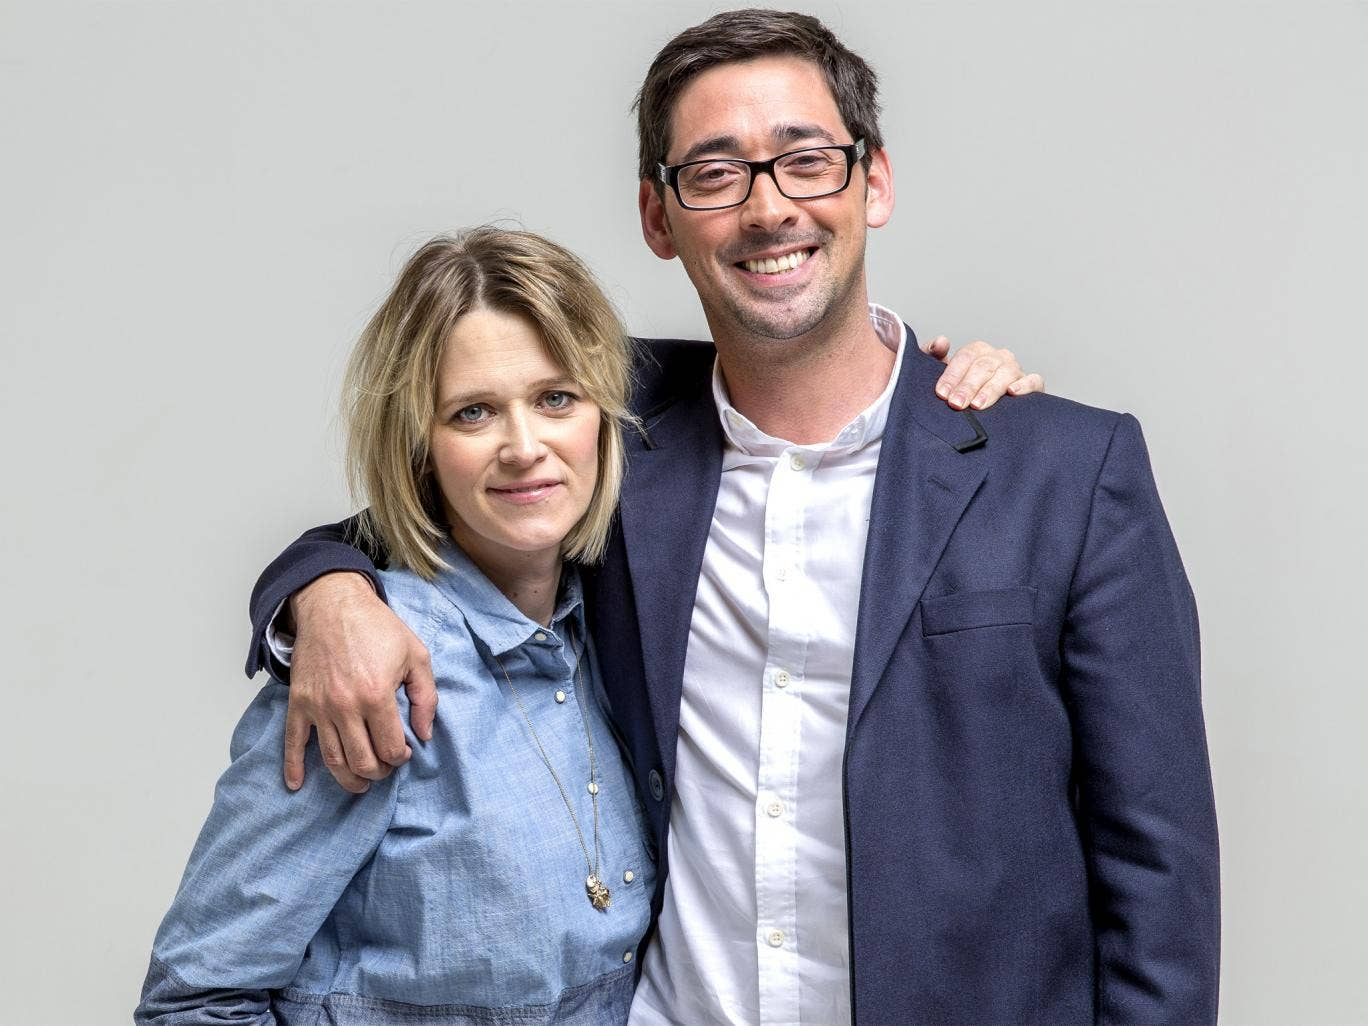 Belly laughs: 5 Live's 'Bump Club' presenters Edith Bowman and Colin Murray